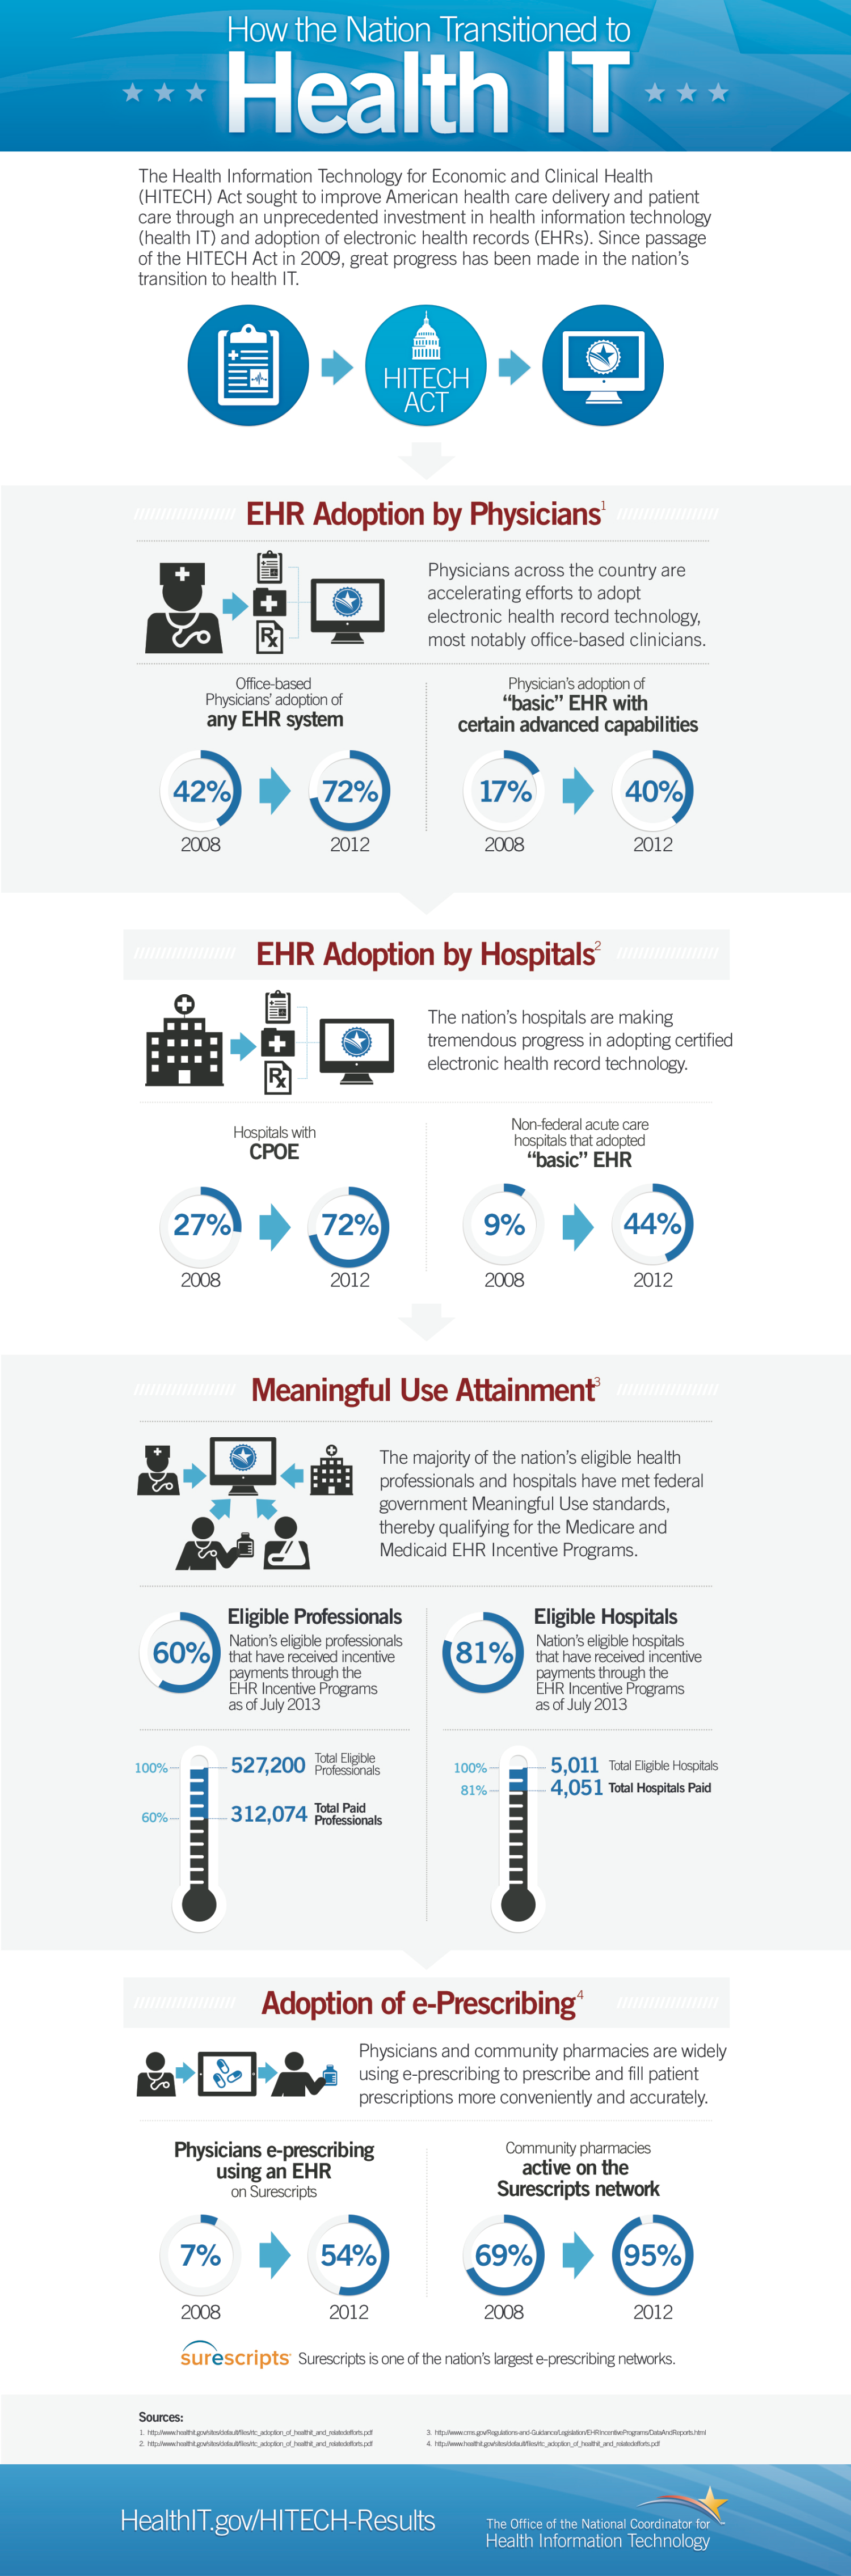 19. Technology Adoption in Medical World